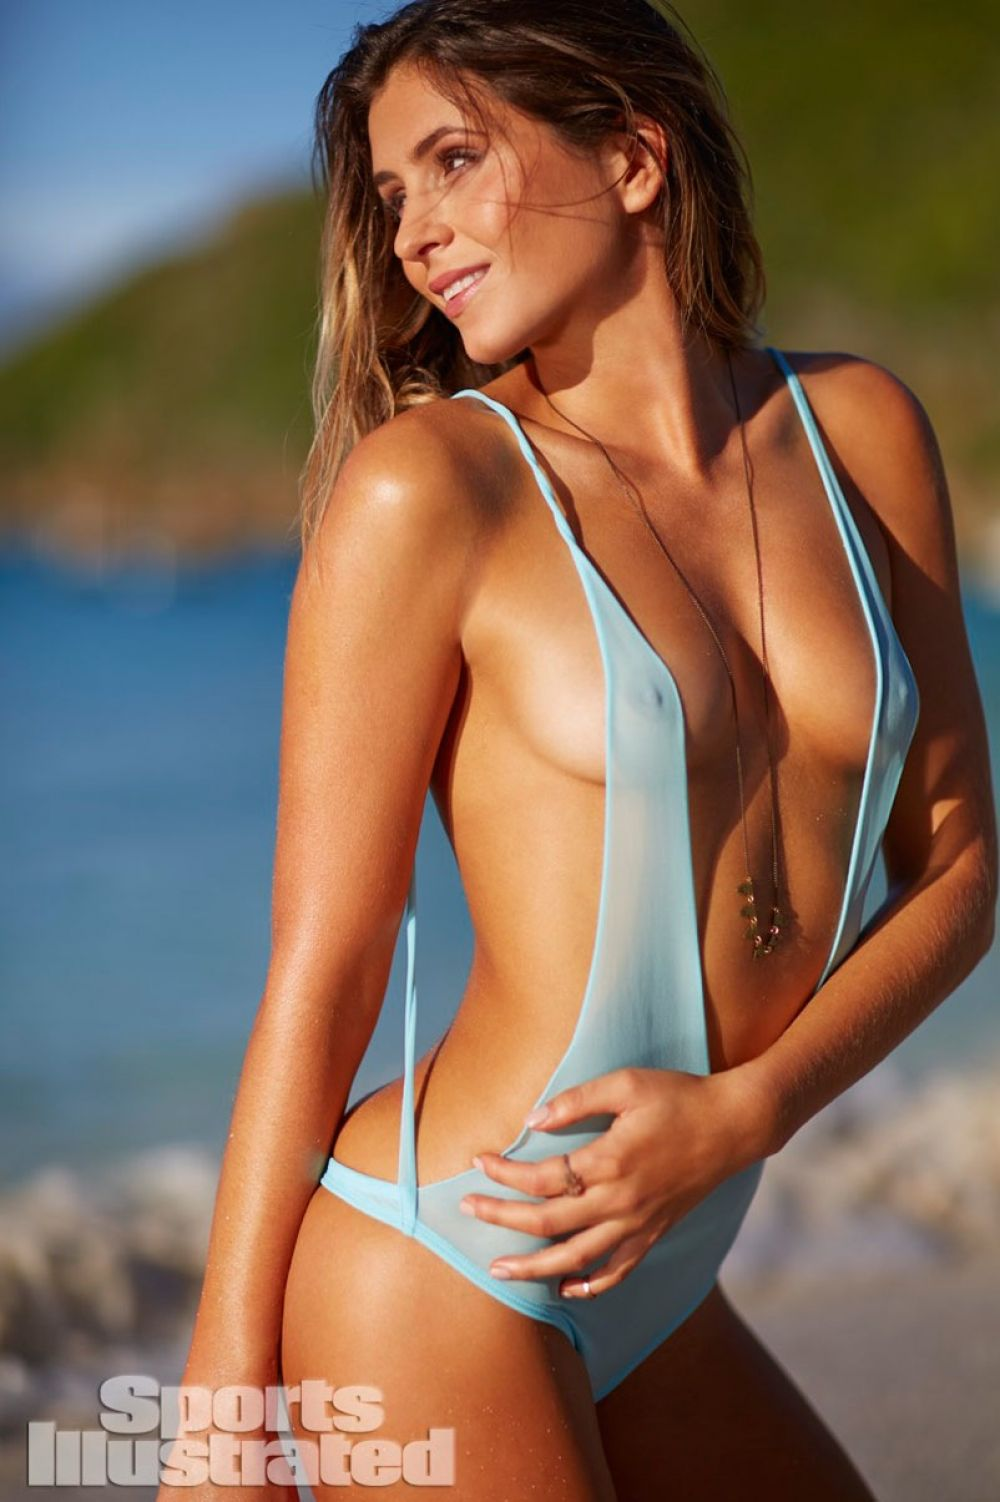 ANASTASIA ASHLEY in Sports Illustrated 2014 Swimsuit Issue ...